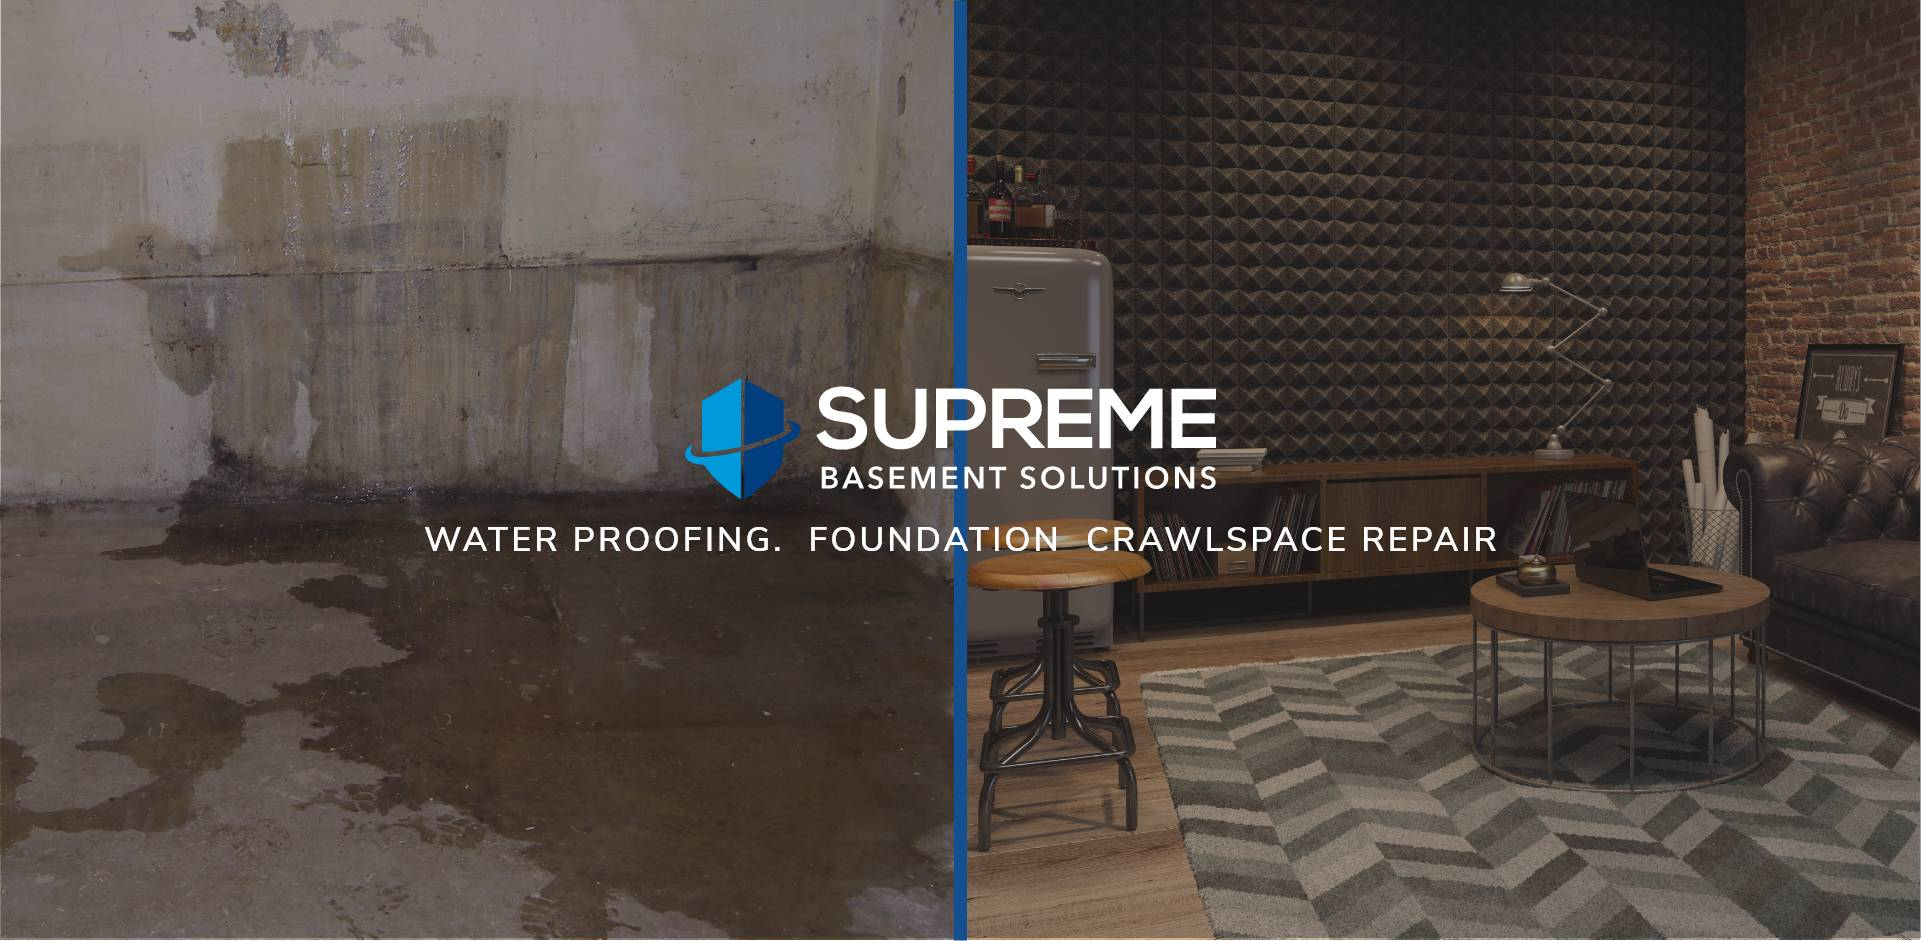 Supreme Basement Solutions